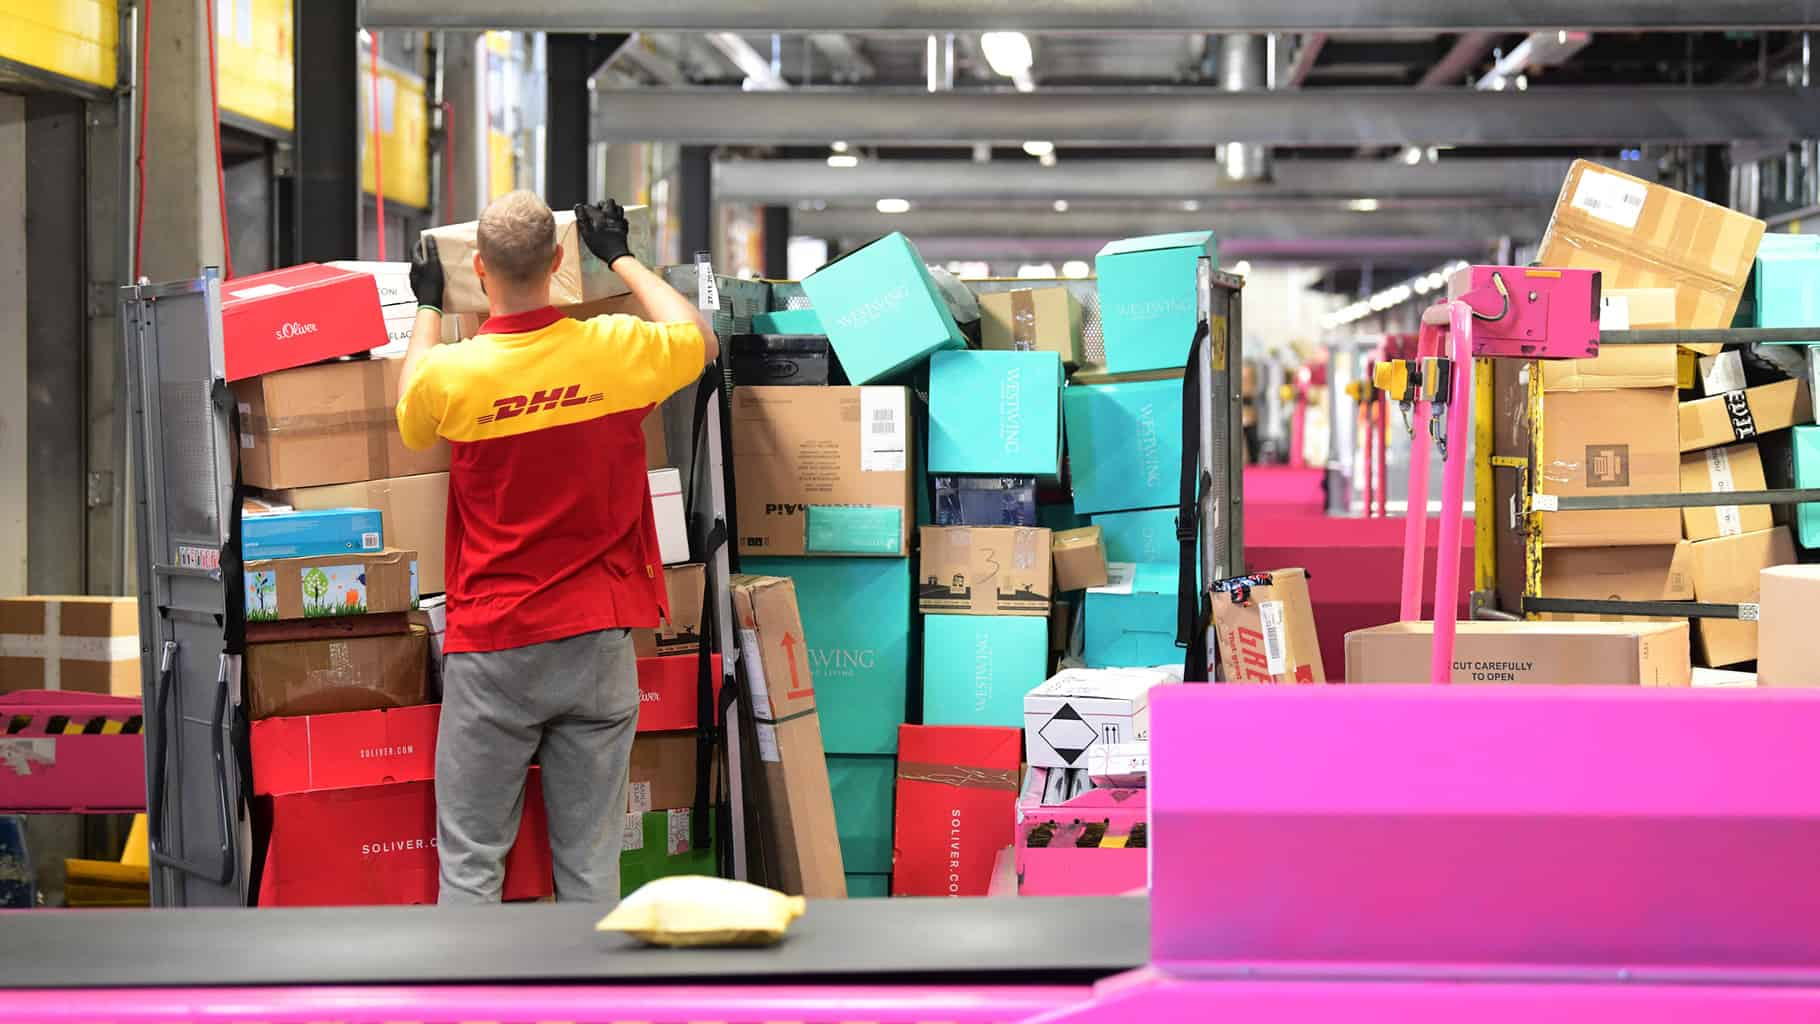 DHL aims to provide accurate delivery time forecasts for customers (Photo: DHL)